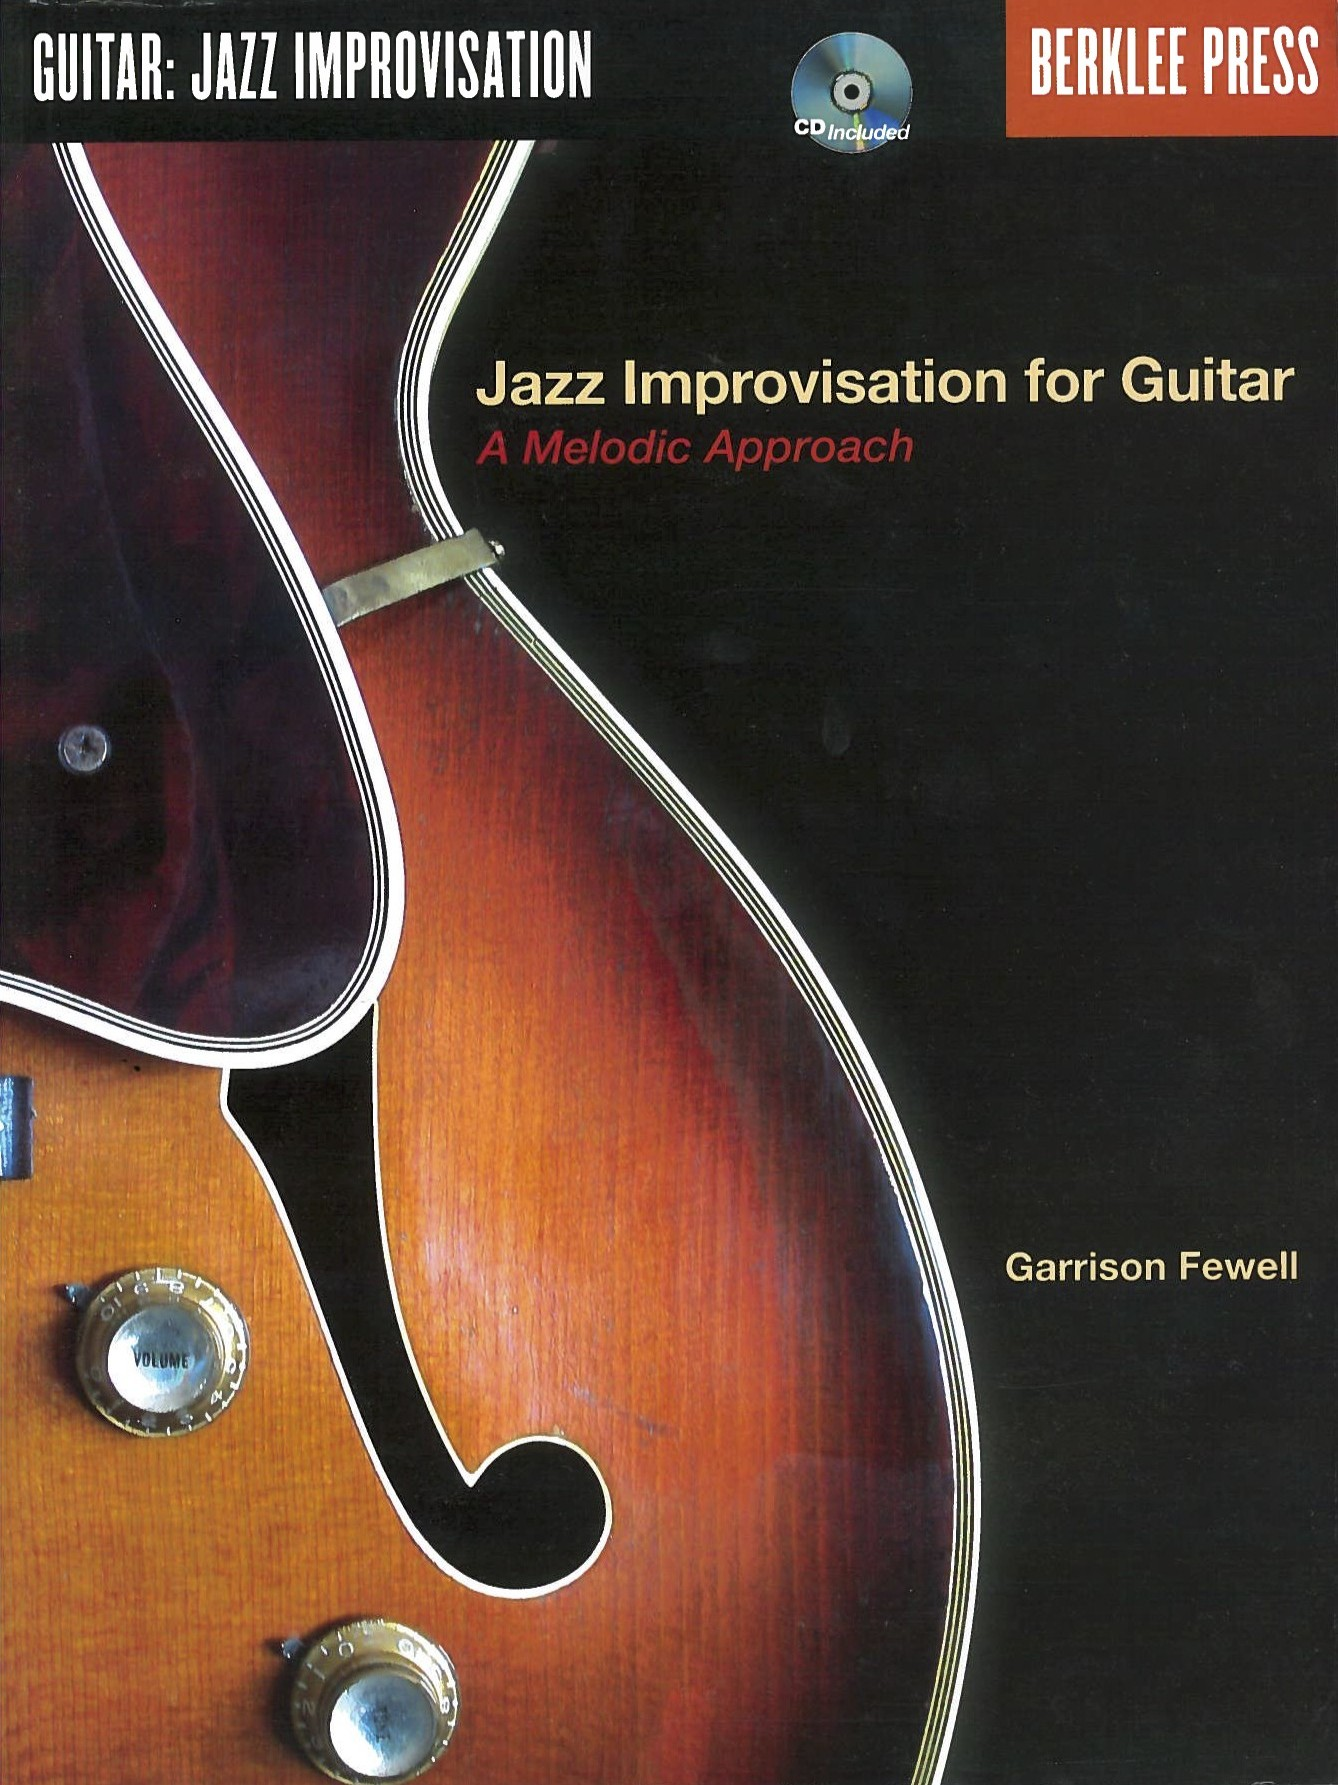 Jazz Improvisation Videos | Instructional Videos | Training